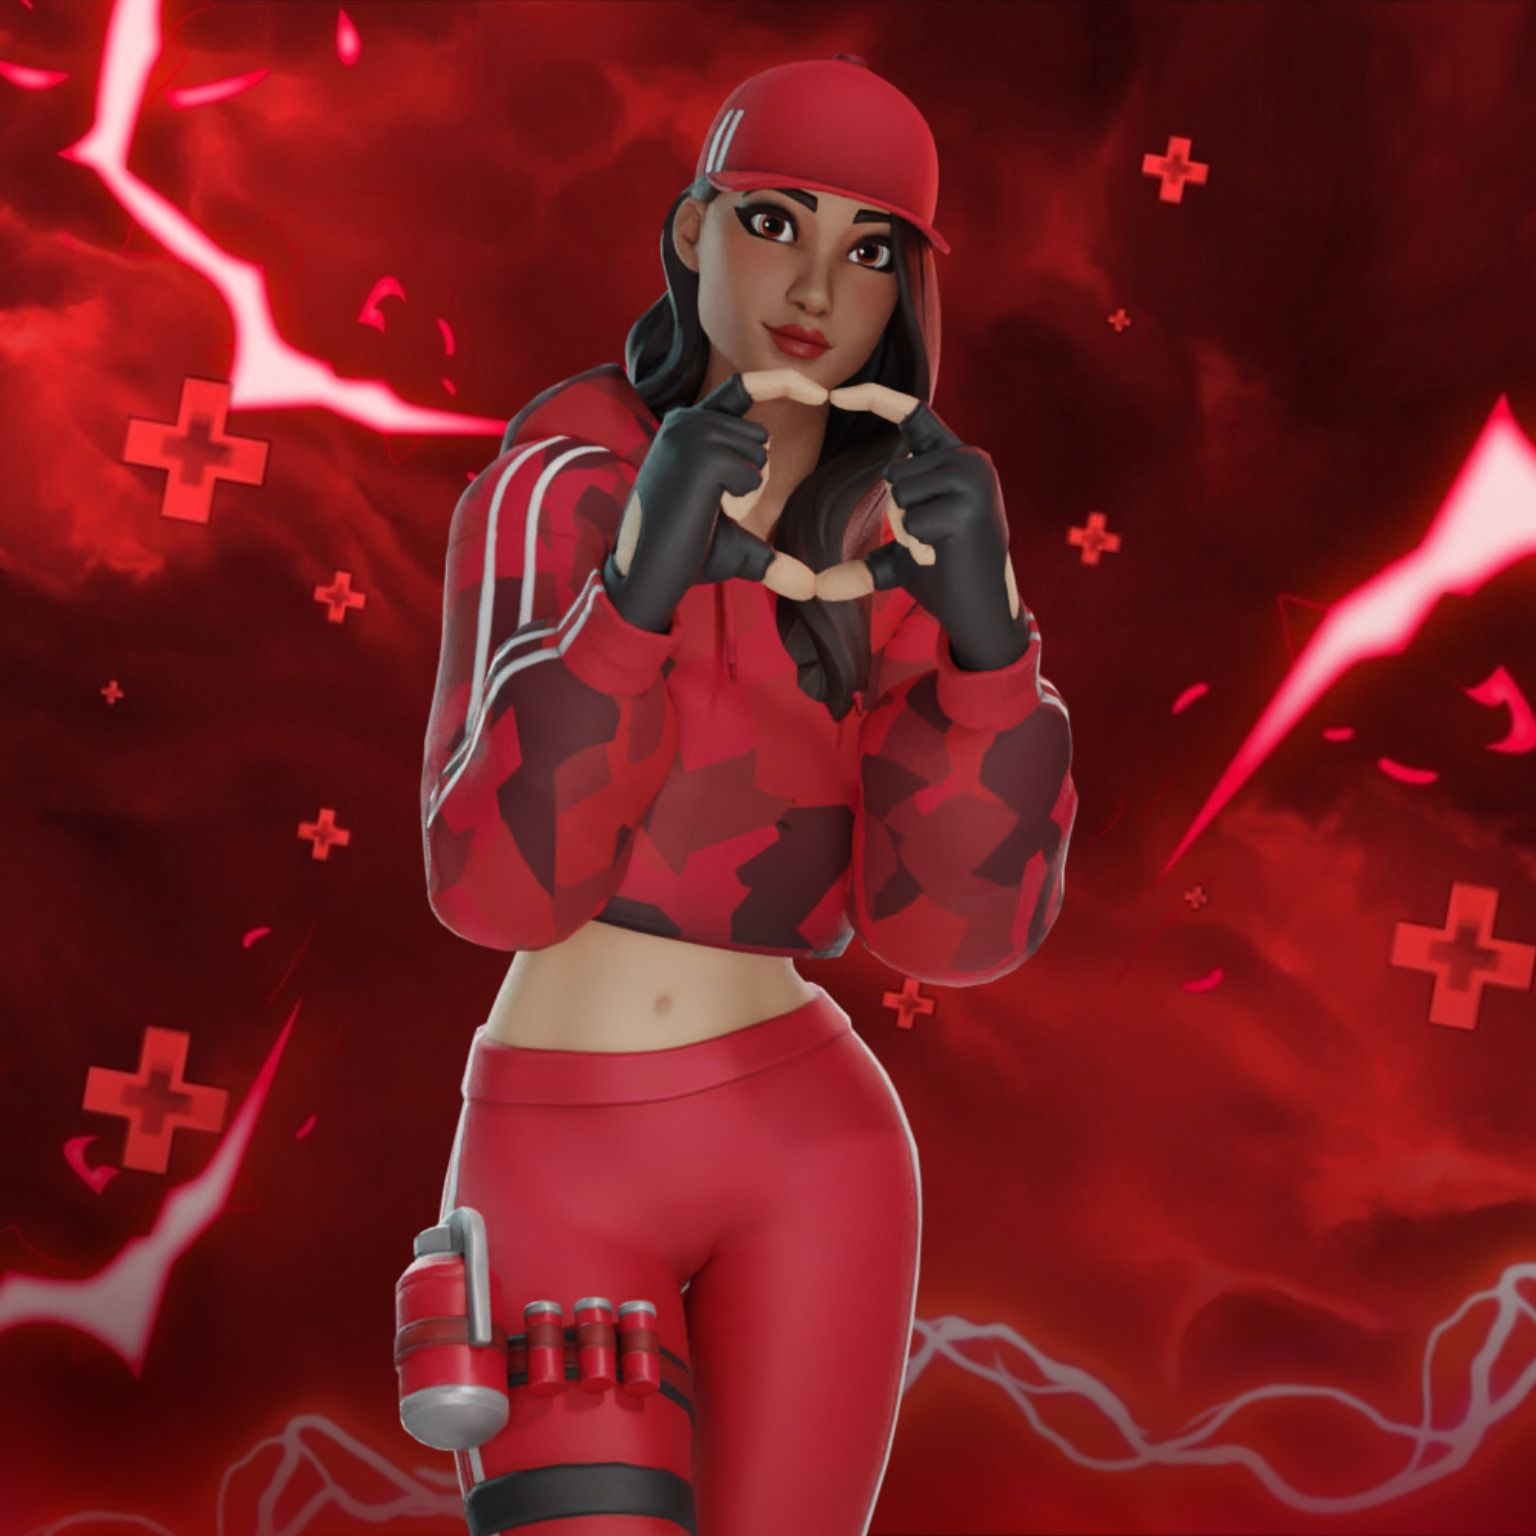 Fortnite Ruby Free To Use Render By Ivey Floo Freetoedit Fortnite Fortniteruby Ruby Fortnitethum In 2020 Best Gaming Wallpapers Seven Super Girls Skin Images